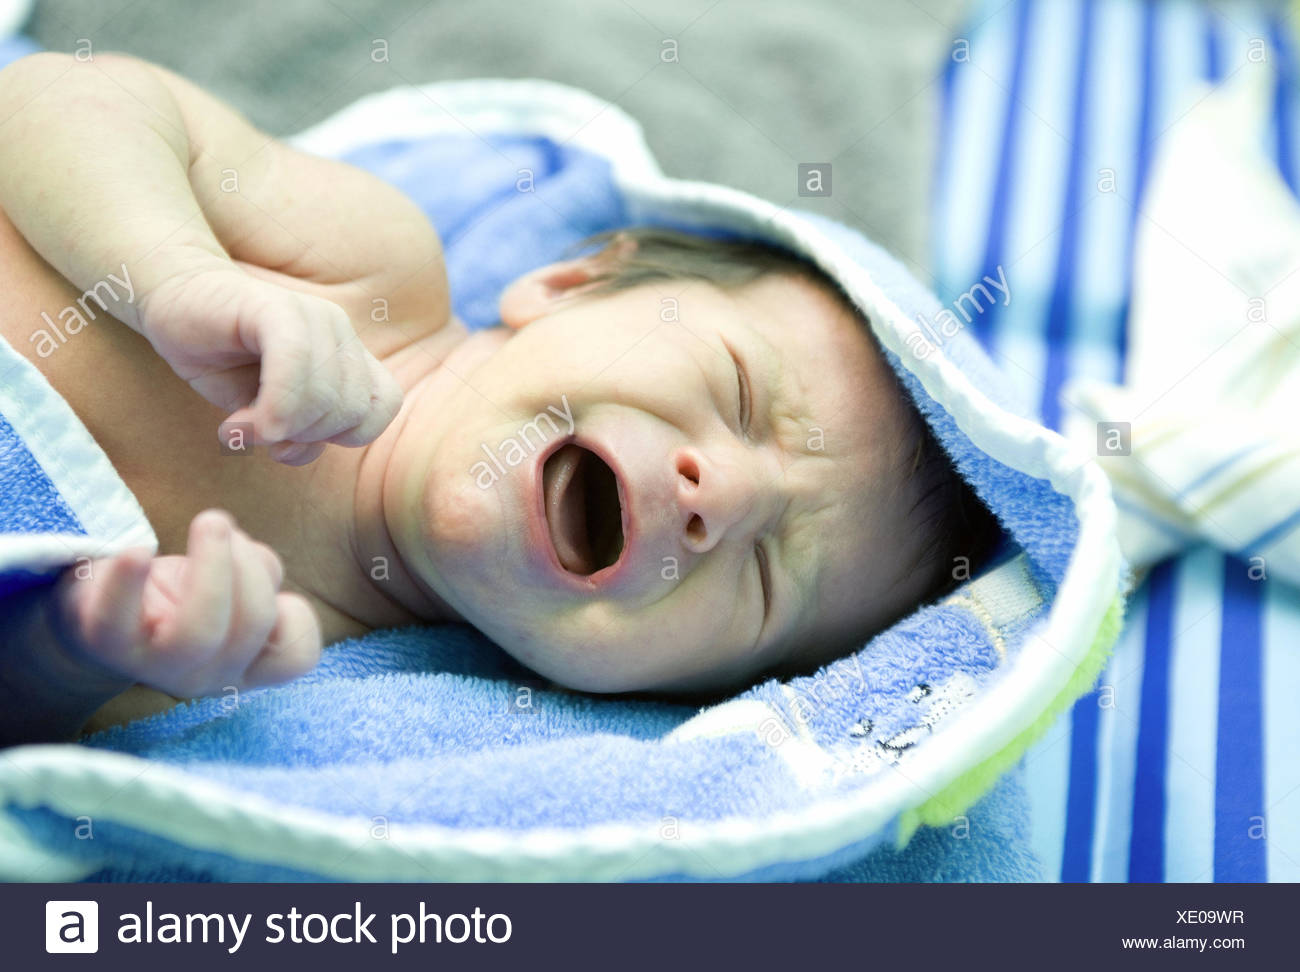 Baby, lie, shout, angrily, portrait, - Stock Image